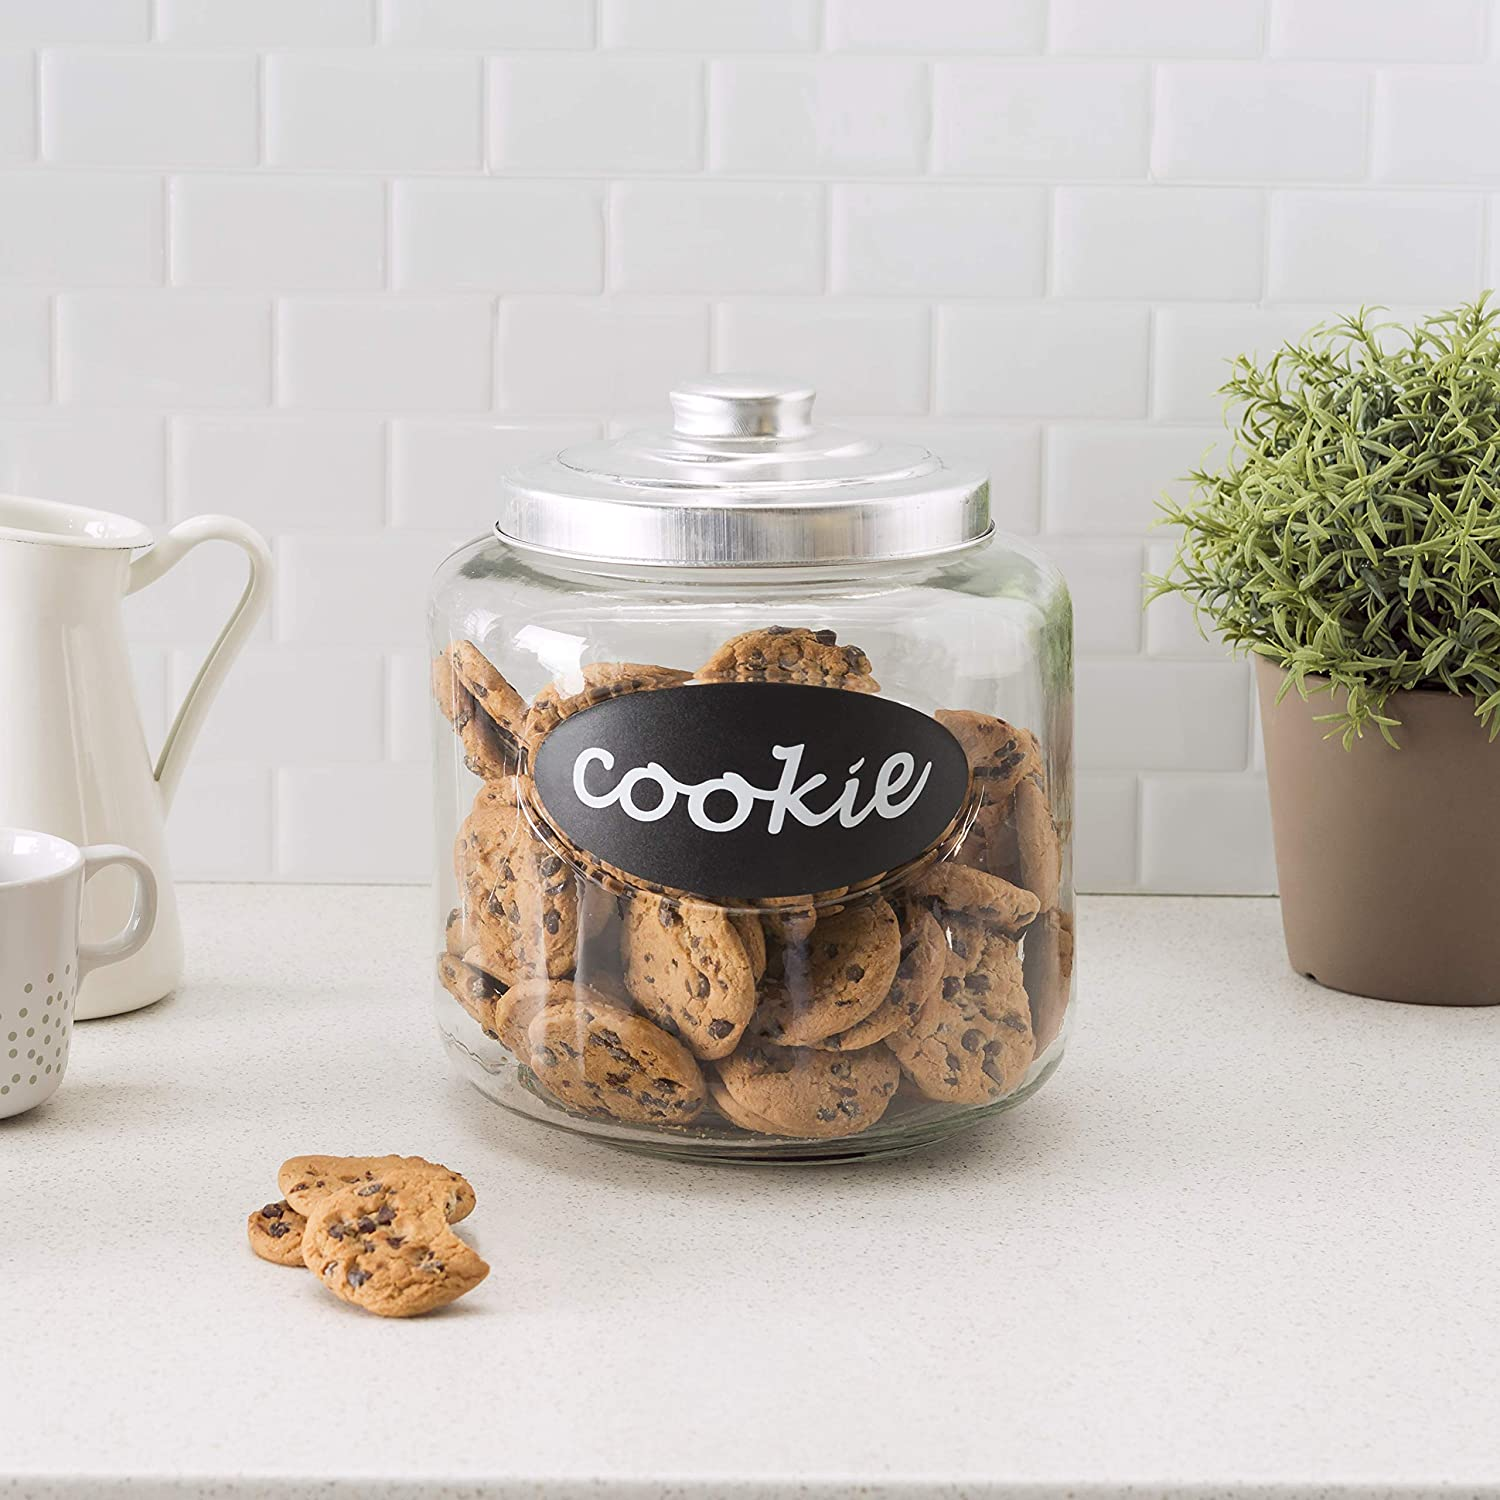 Flour Pasta Sugar Cereal Home Basics Large Capacity Glass Cookie Jar with Secure Metal Lid and Decorative Jar Label